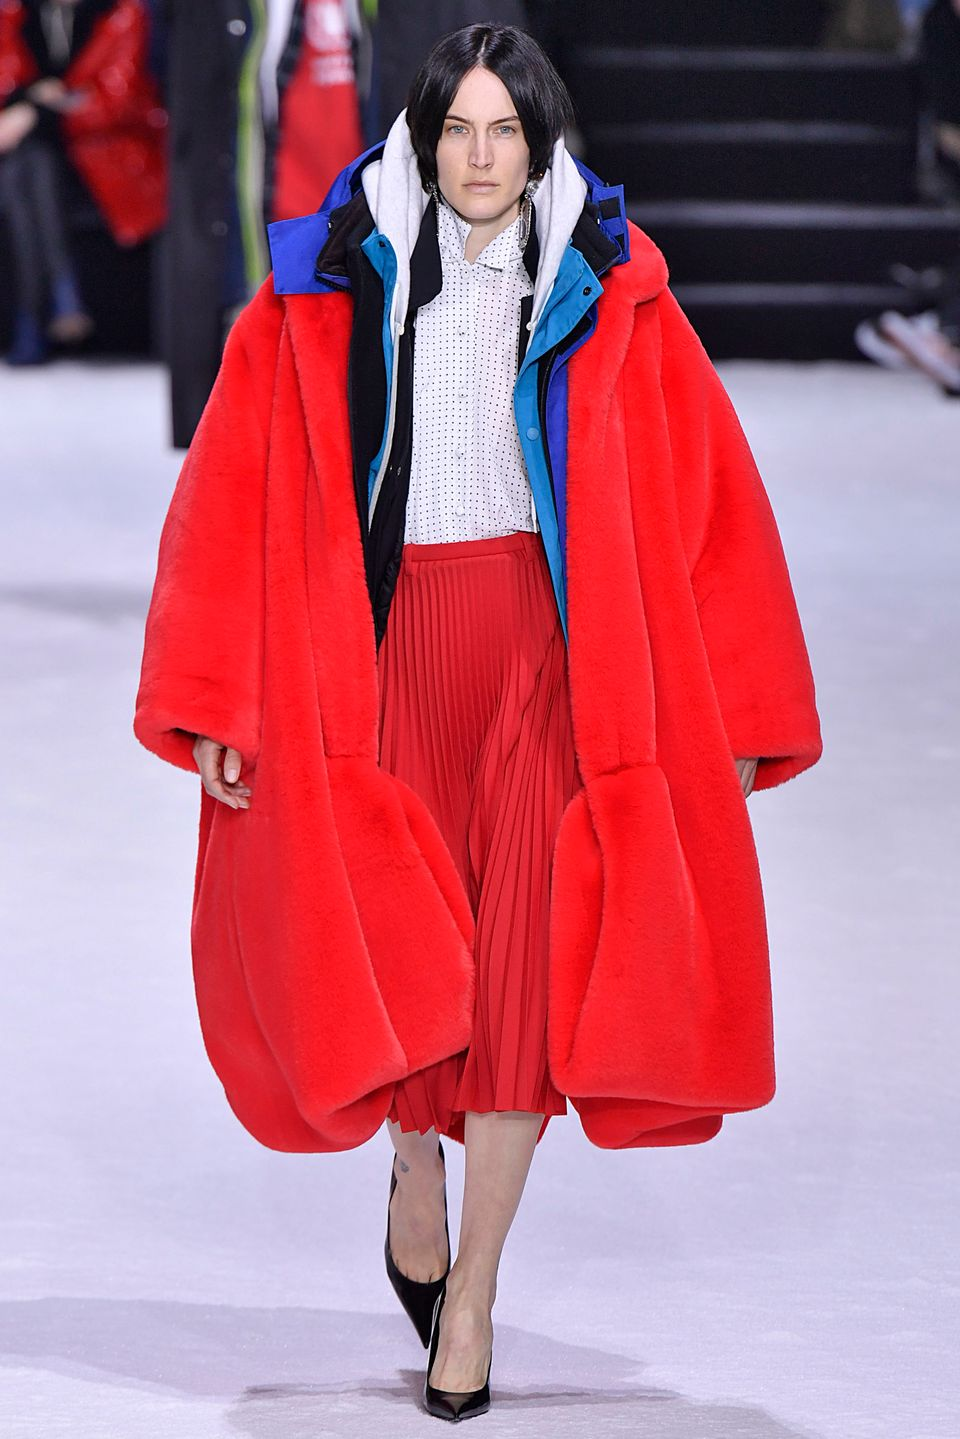 92c2c8a1 Ridiculously Oversized Coats Are Fall 2018's Comfiest Trend ...